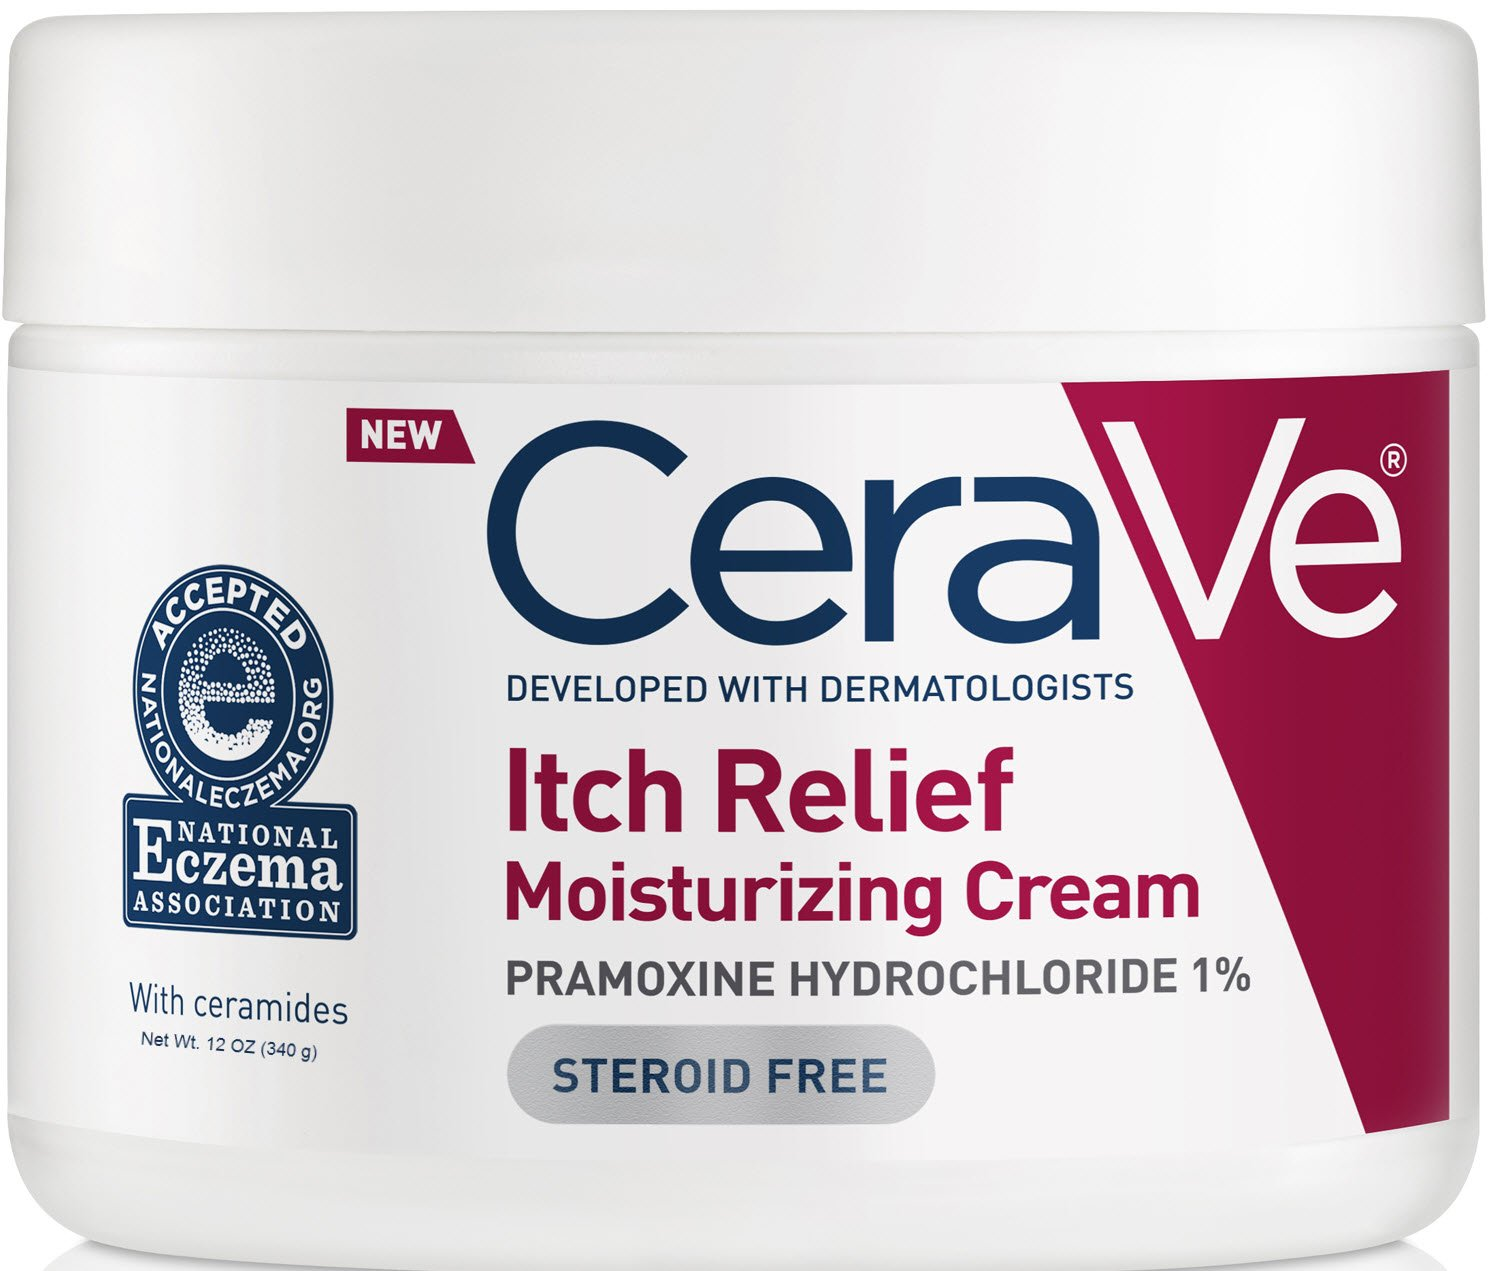 CeraVe Moisturizing Cream for Itch Relief | 12 Ounce | Dry Skin Itch Relief Cream with Pramoxine Hydrochloride | Fragrance Free by CeraVe